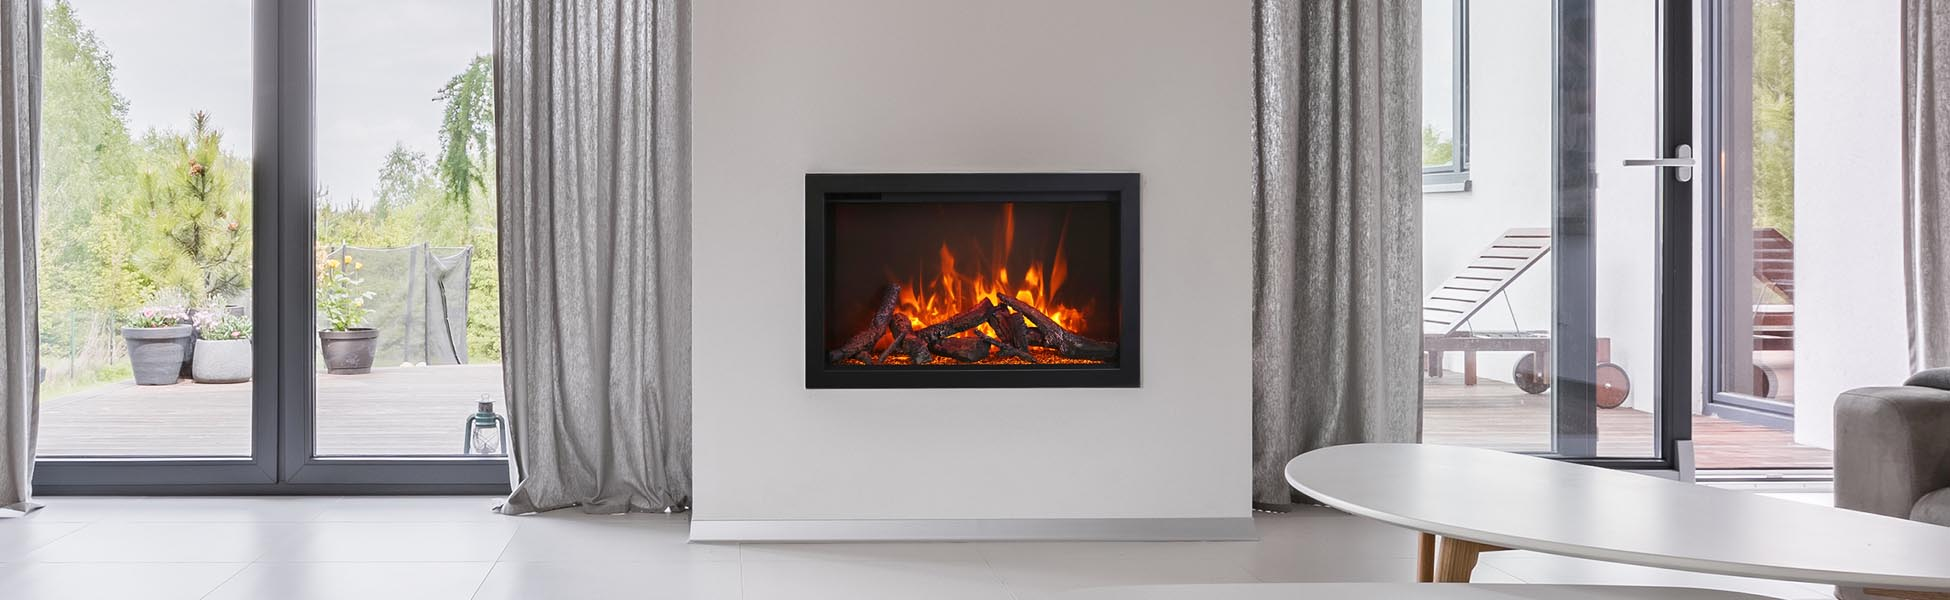 Amantiei TRD-38 electric fireplac